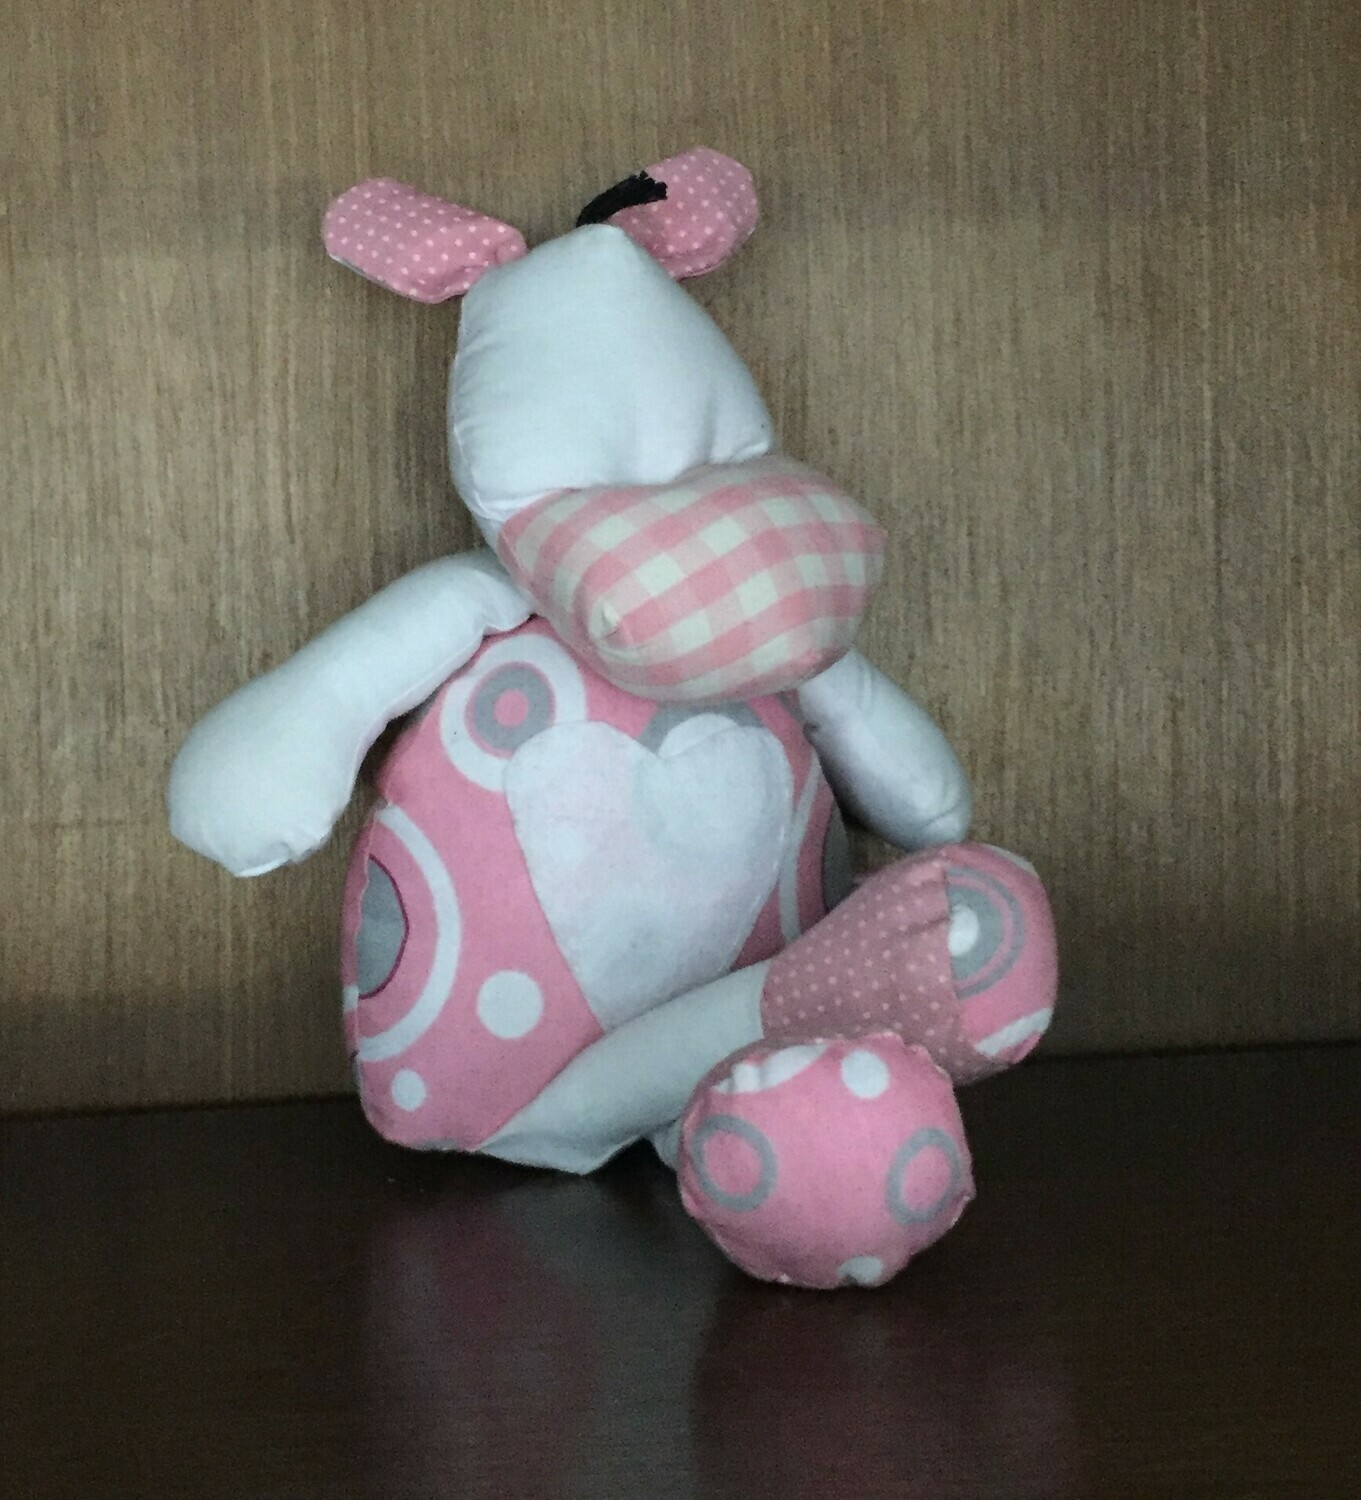 Toy: Cow Pink